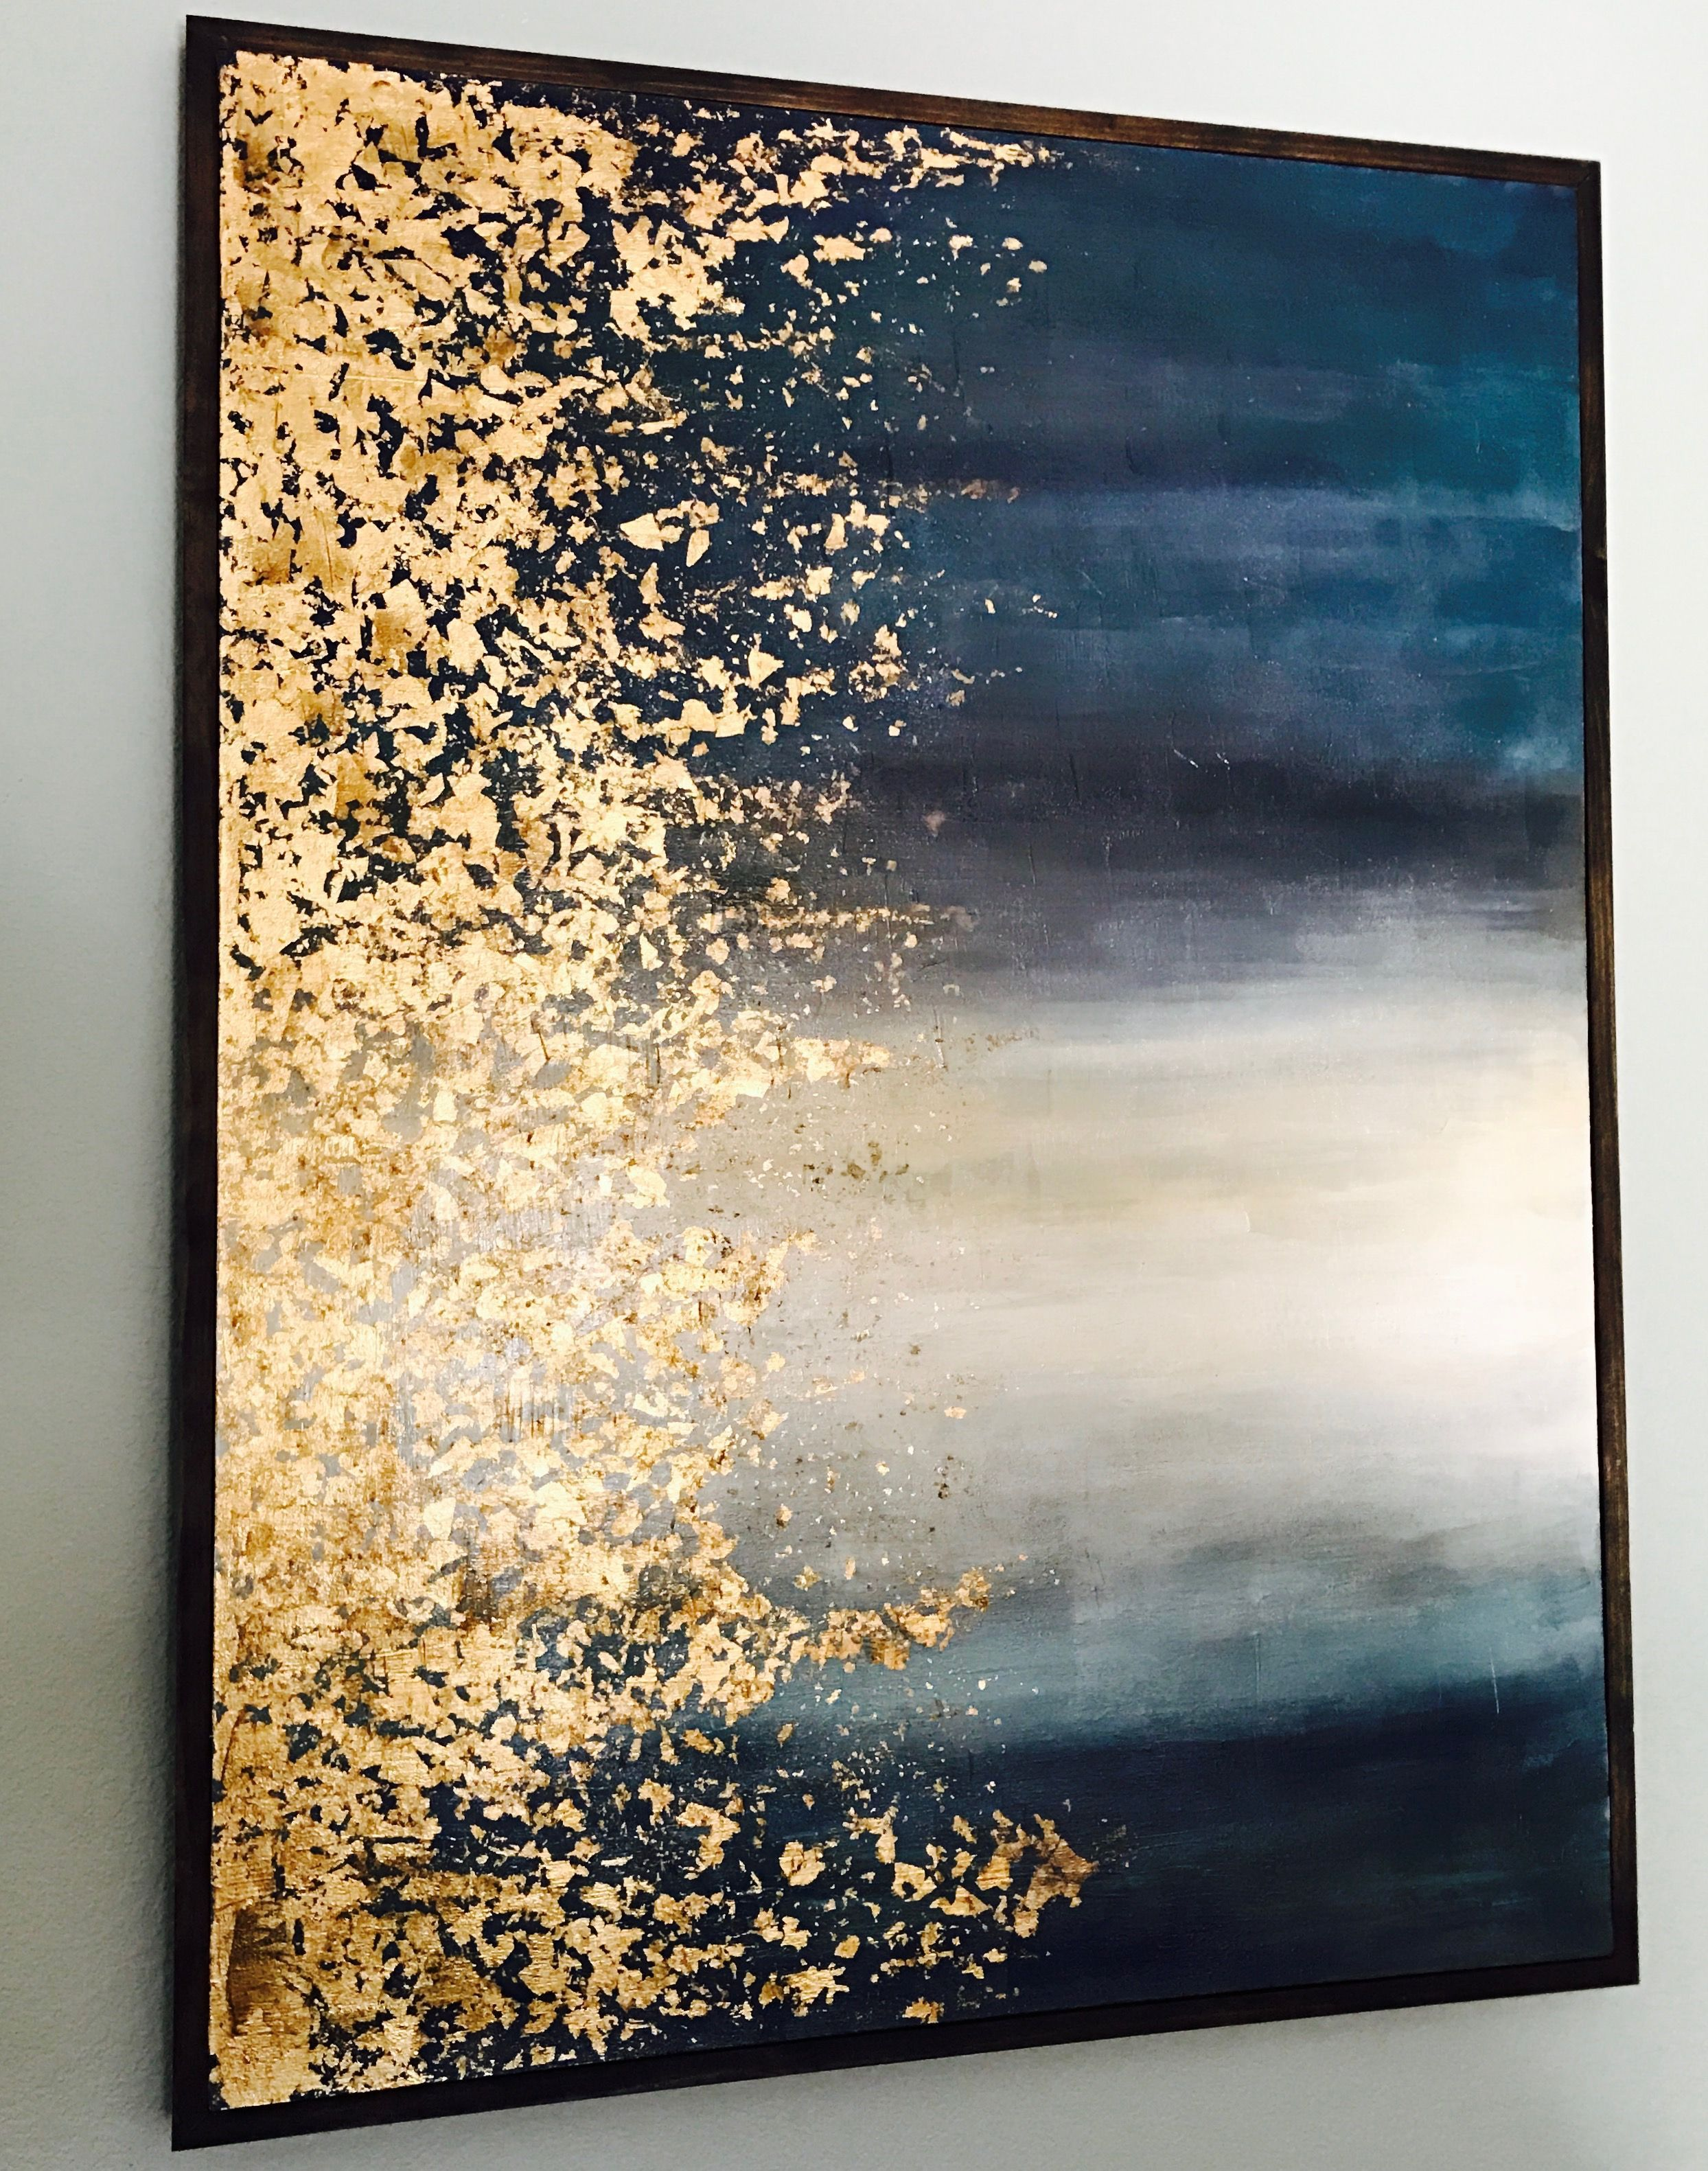 Gold Leaf Art Using Polyurethanes Is Not Really Confined Just To Creating Critical Things Like Molds And Casts In 2020 Art Deco Paintings Gold Leaf Art Leaf Art